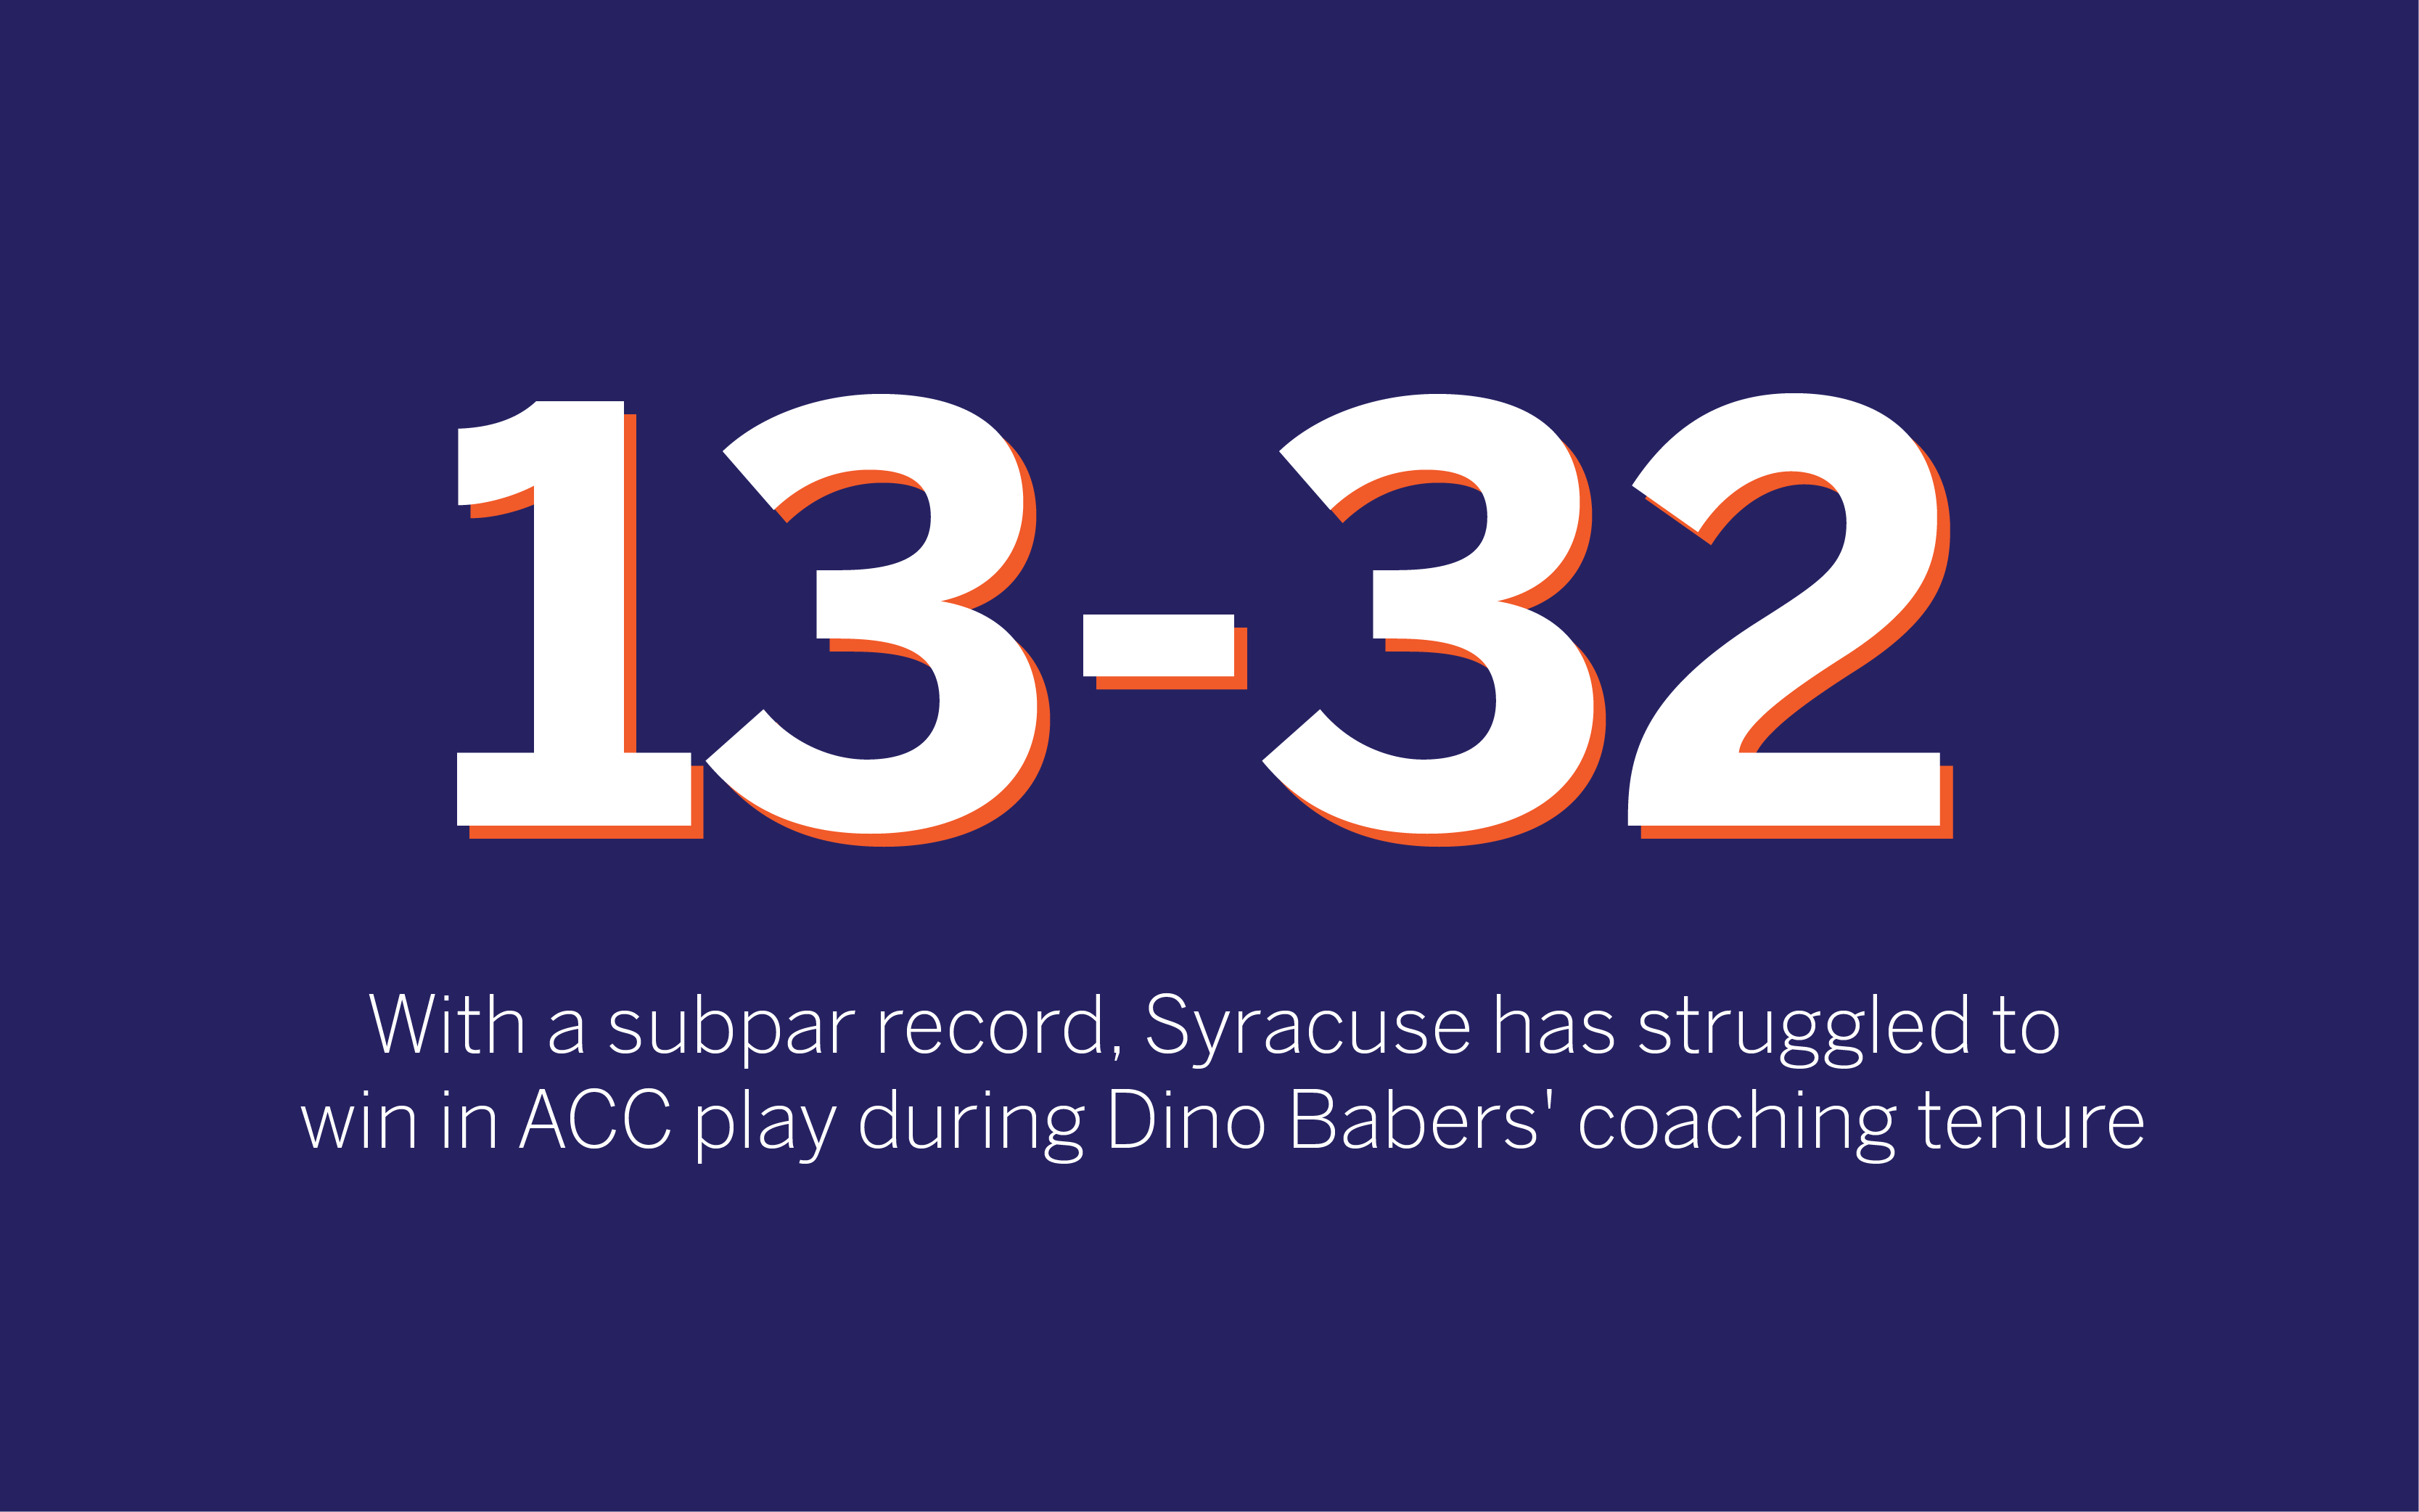 Syracuse has finished 13-32 in ACC play under Dino Babers.